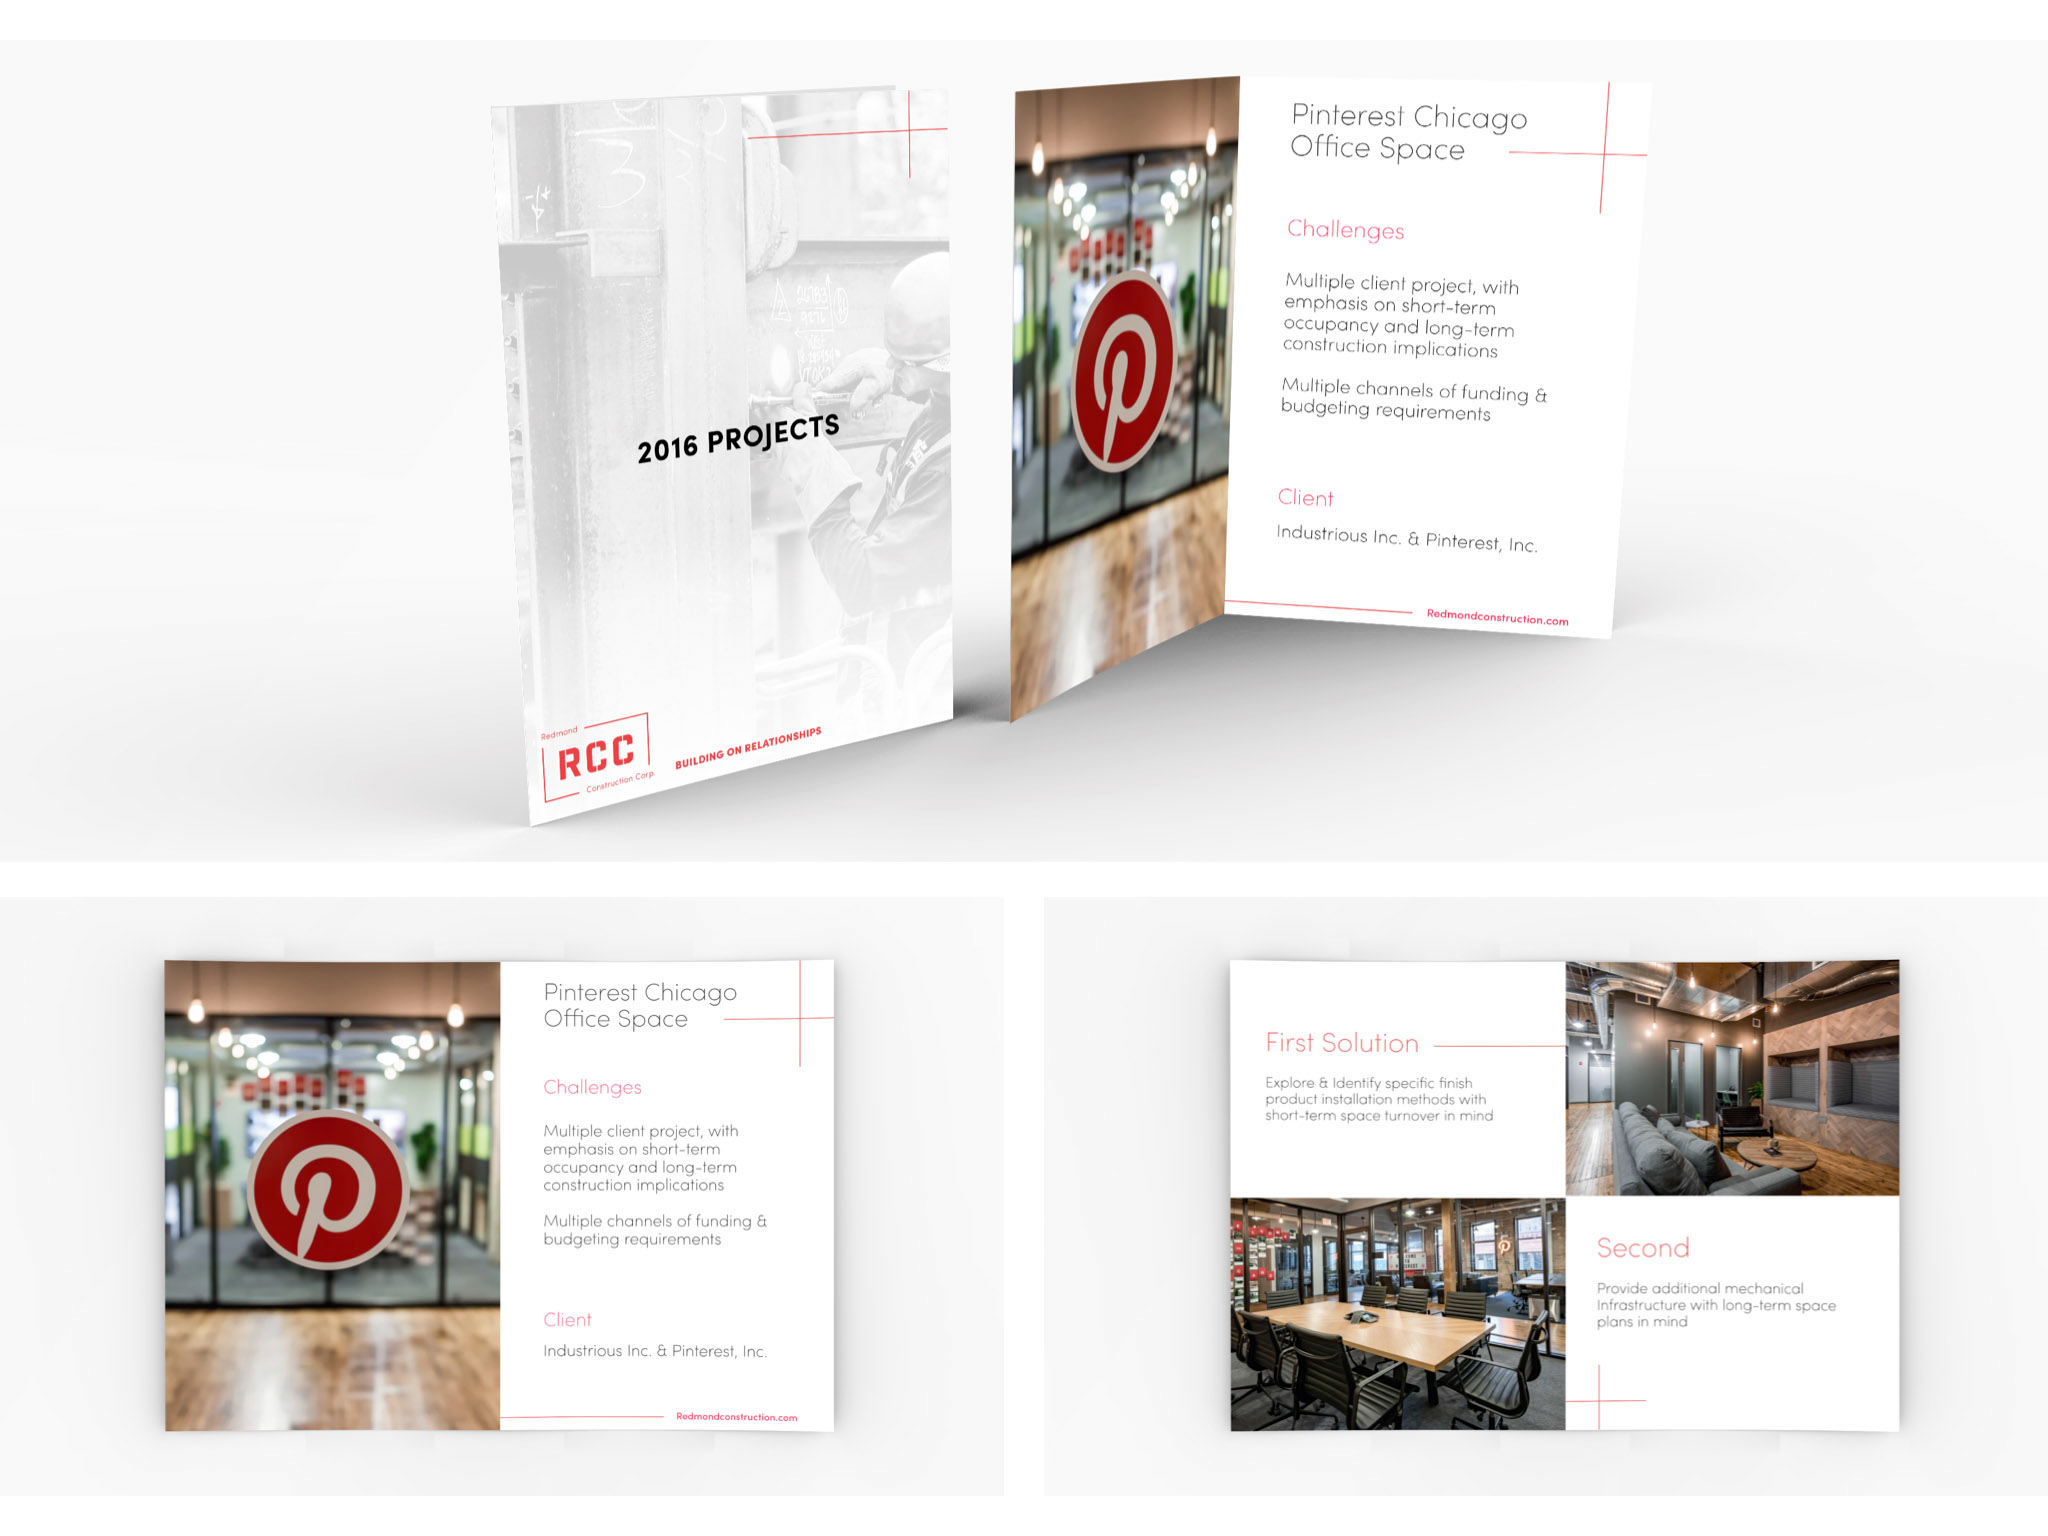 This image includes mockups of the brochure created for RCC's 2016 projects. The project featured is Pinterest Chicago office.